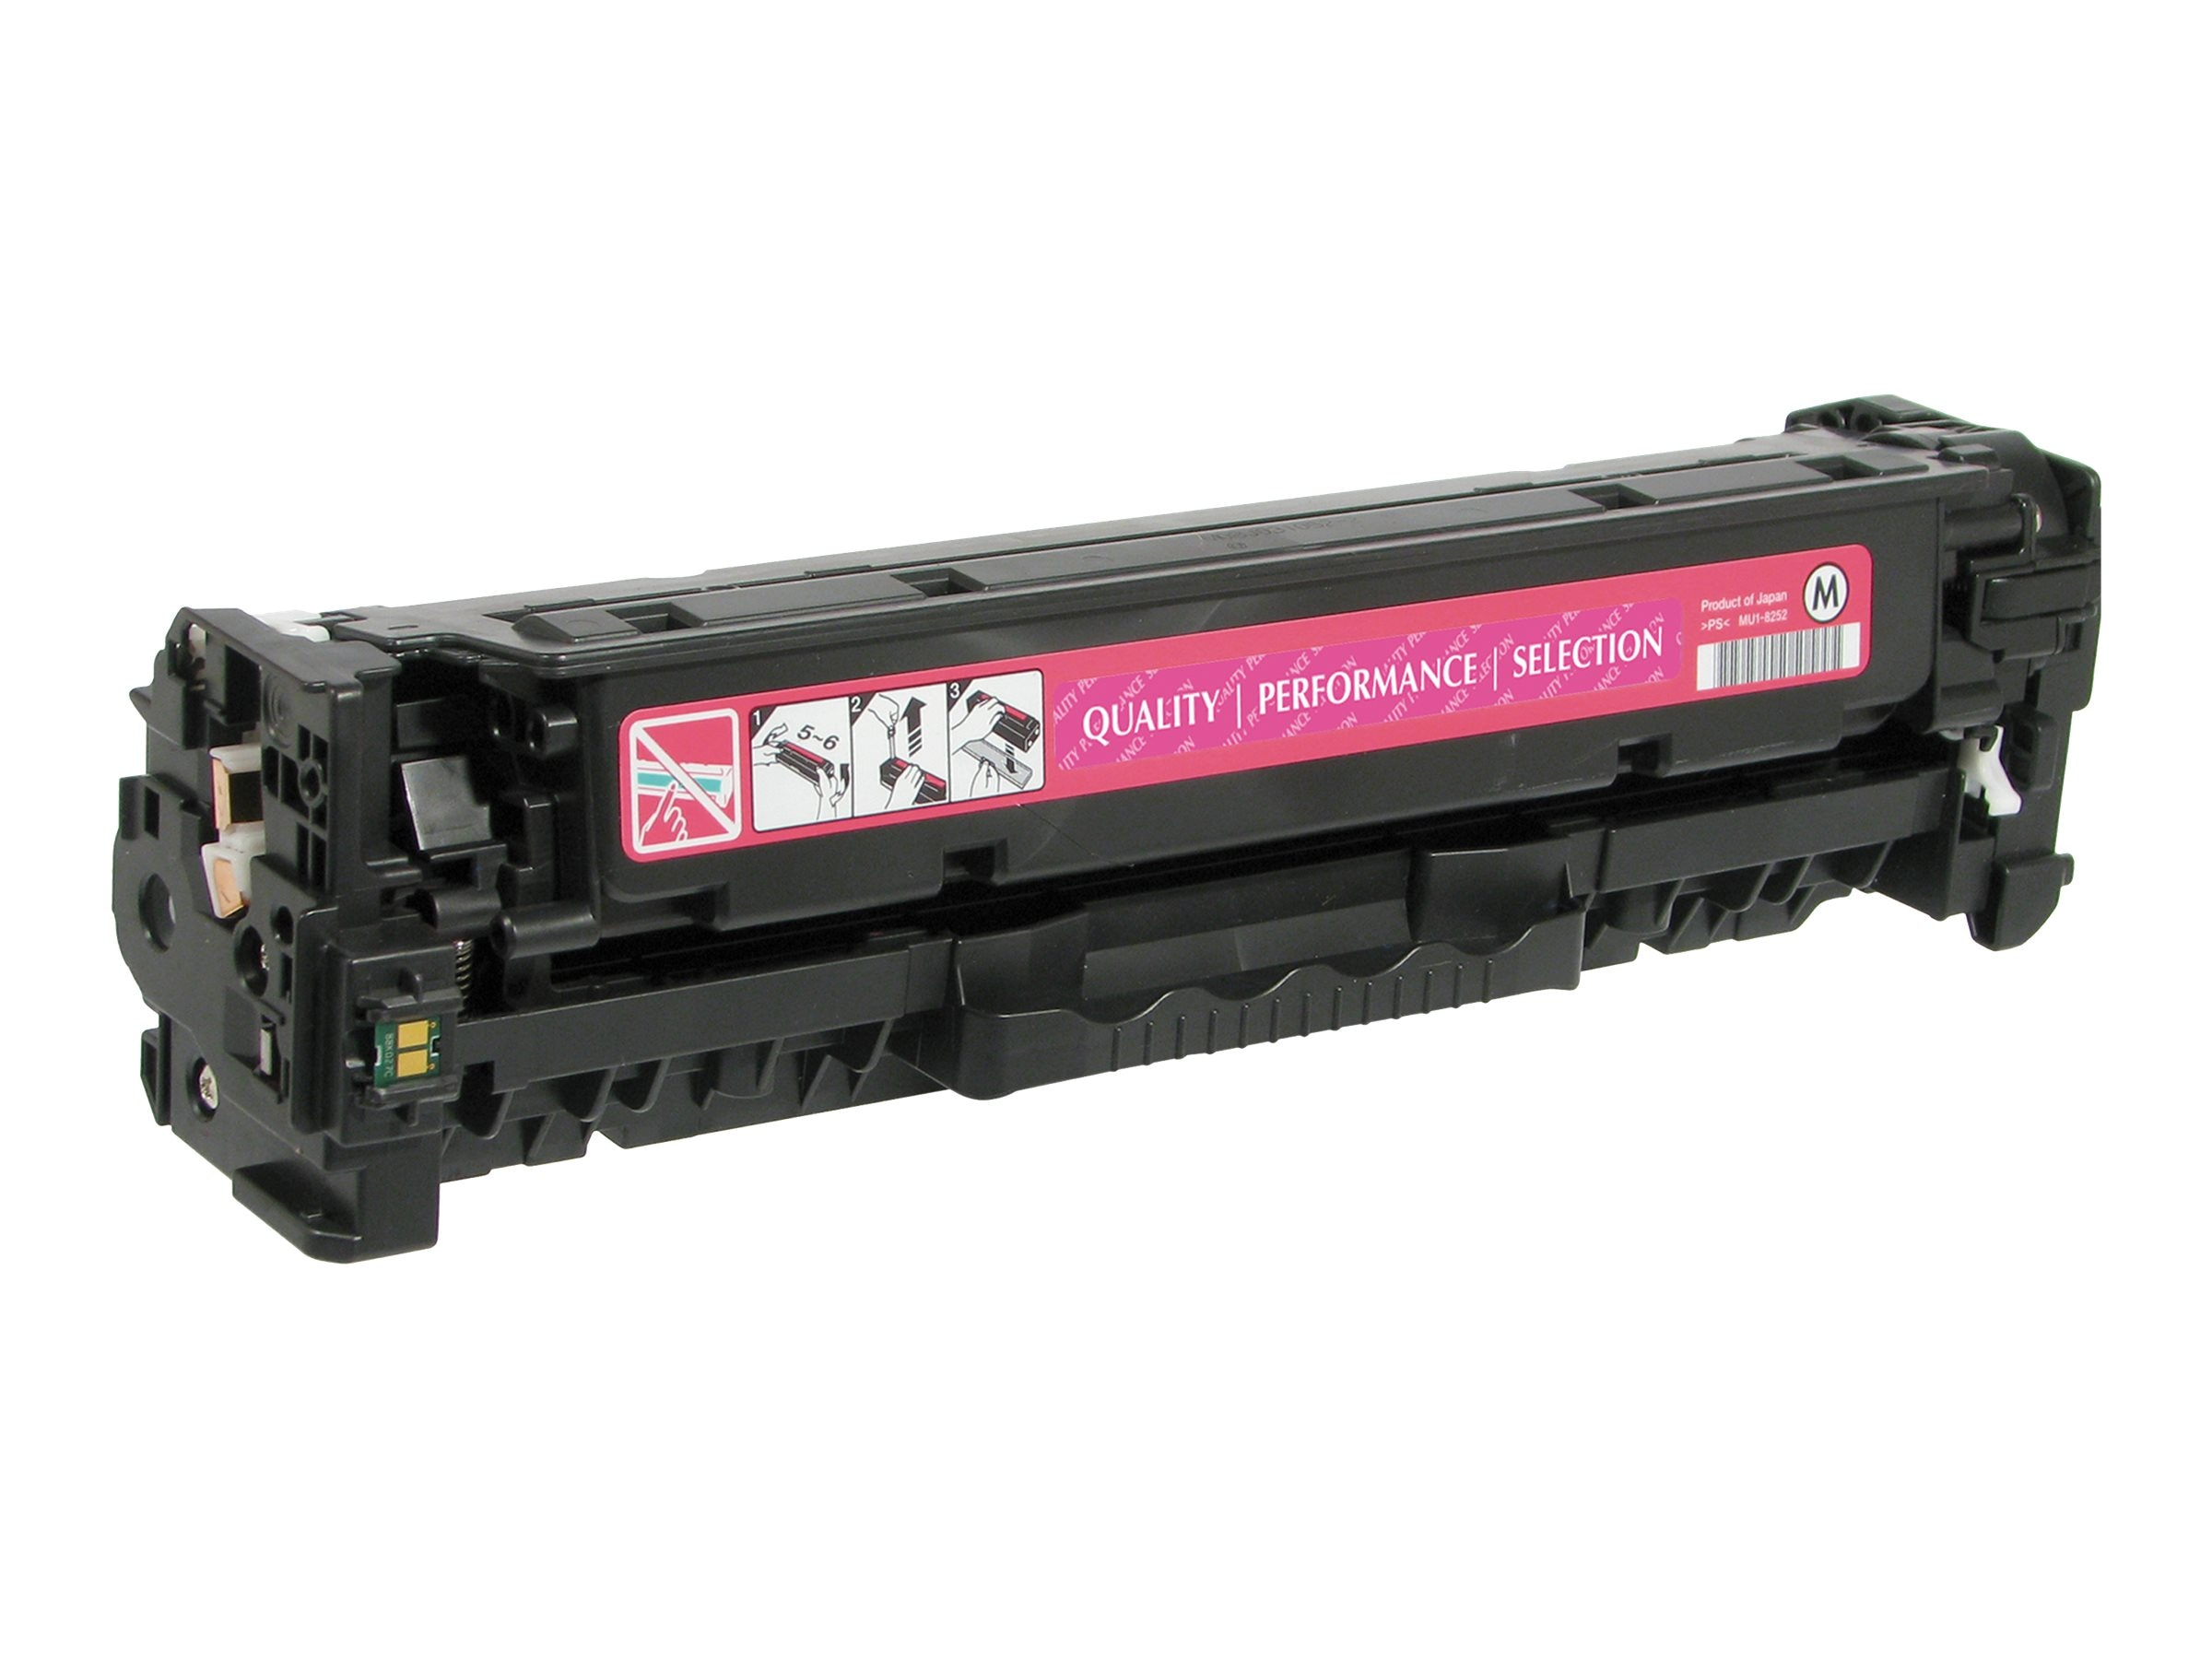 V7 CE413A Magenta Toner Cartridge for HP LaserJet Pro Color M375 M451, V7M451M